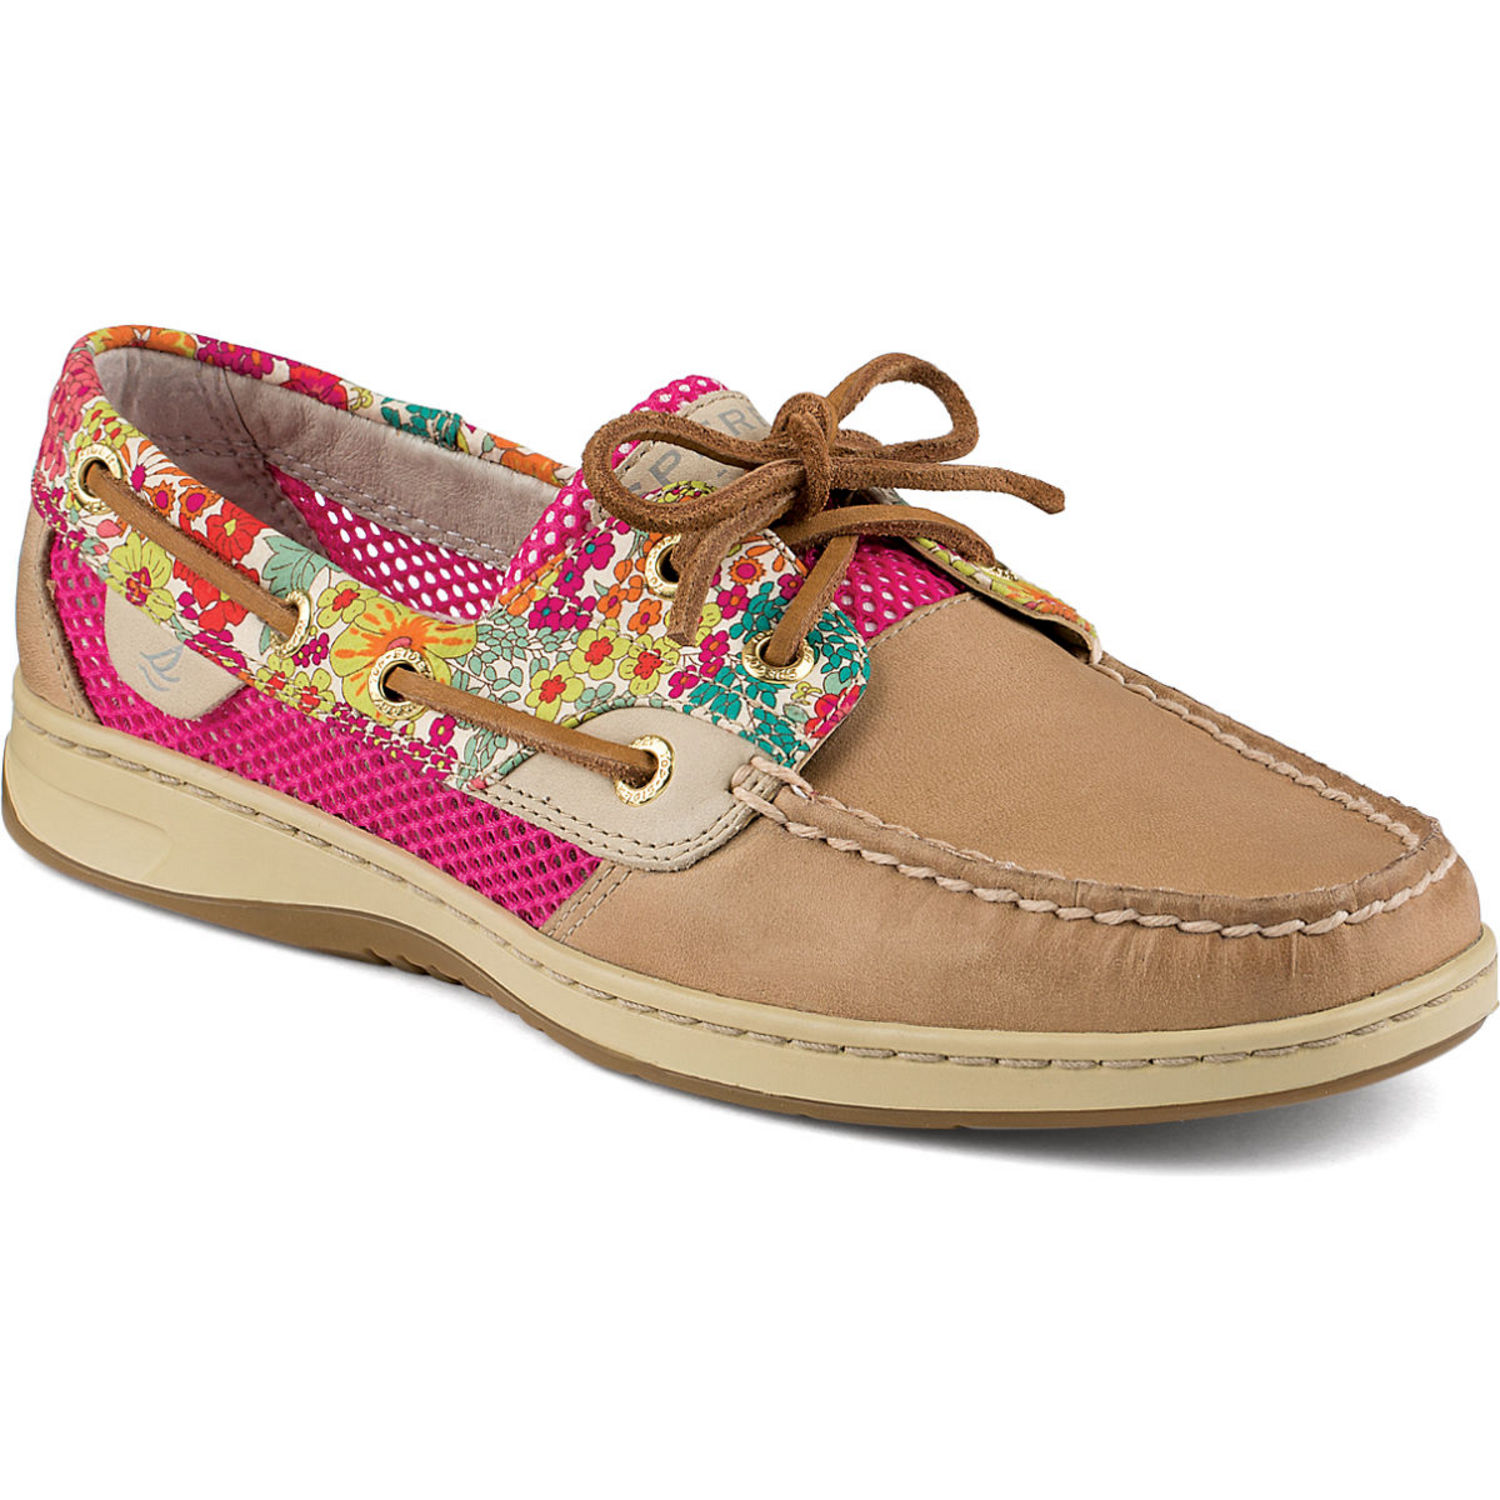 Sperry Top Sider Women s Bluefish Liberty Floral Print 2 Eye Boat Shoes